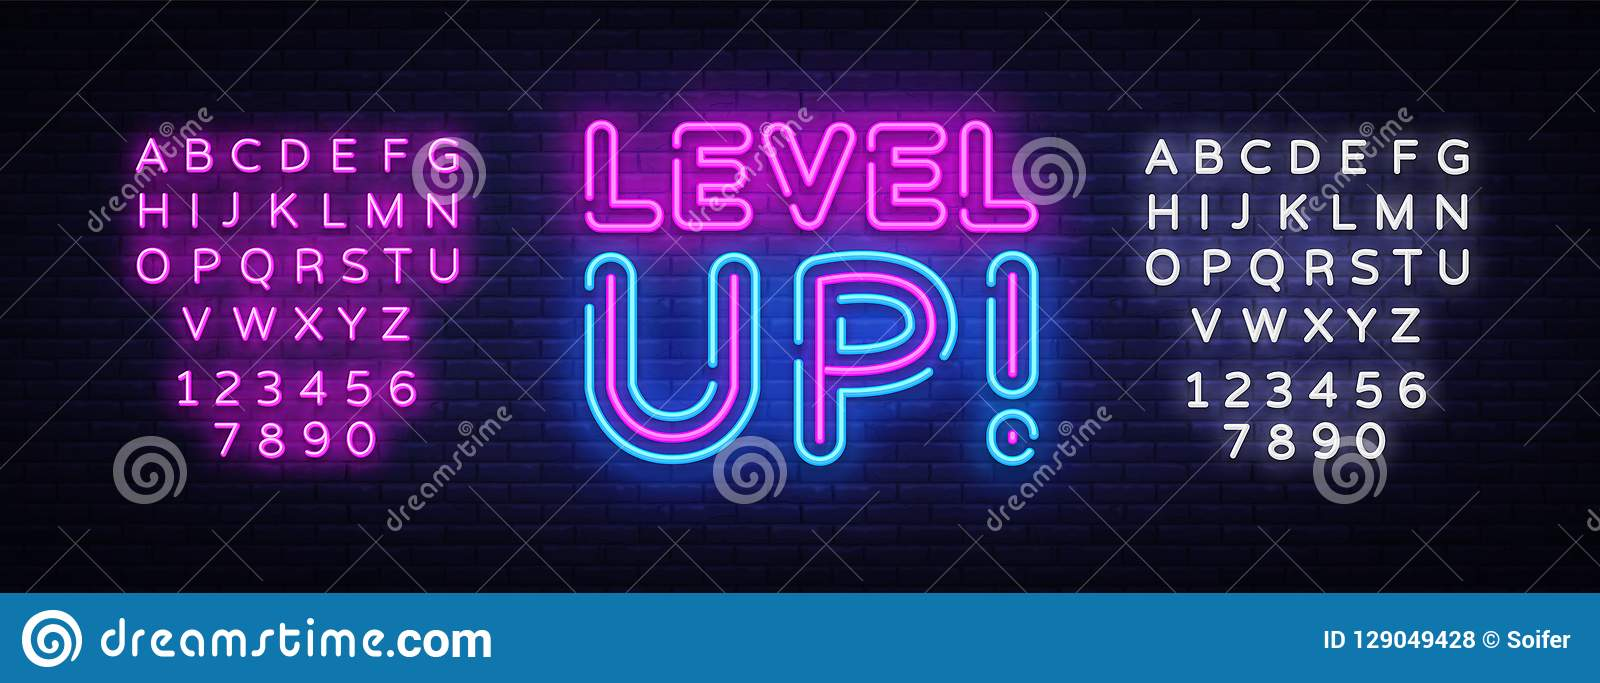 Level Up Neon Text Vector. Level Up neon sign, design template, modern trend design, night neon signboard, night bright